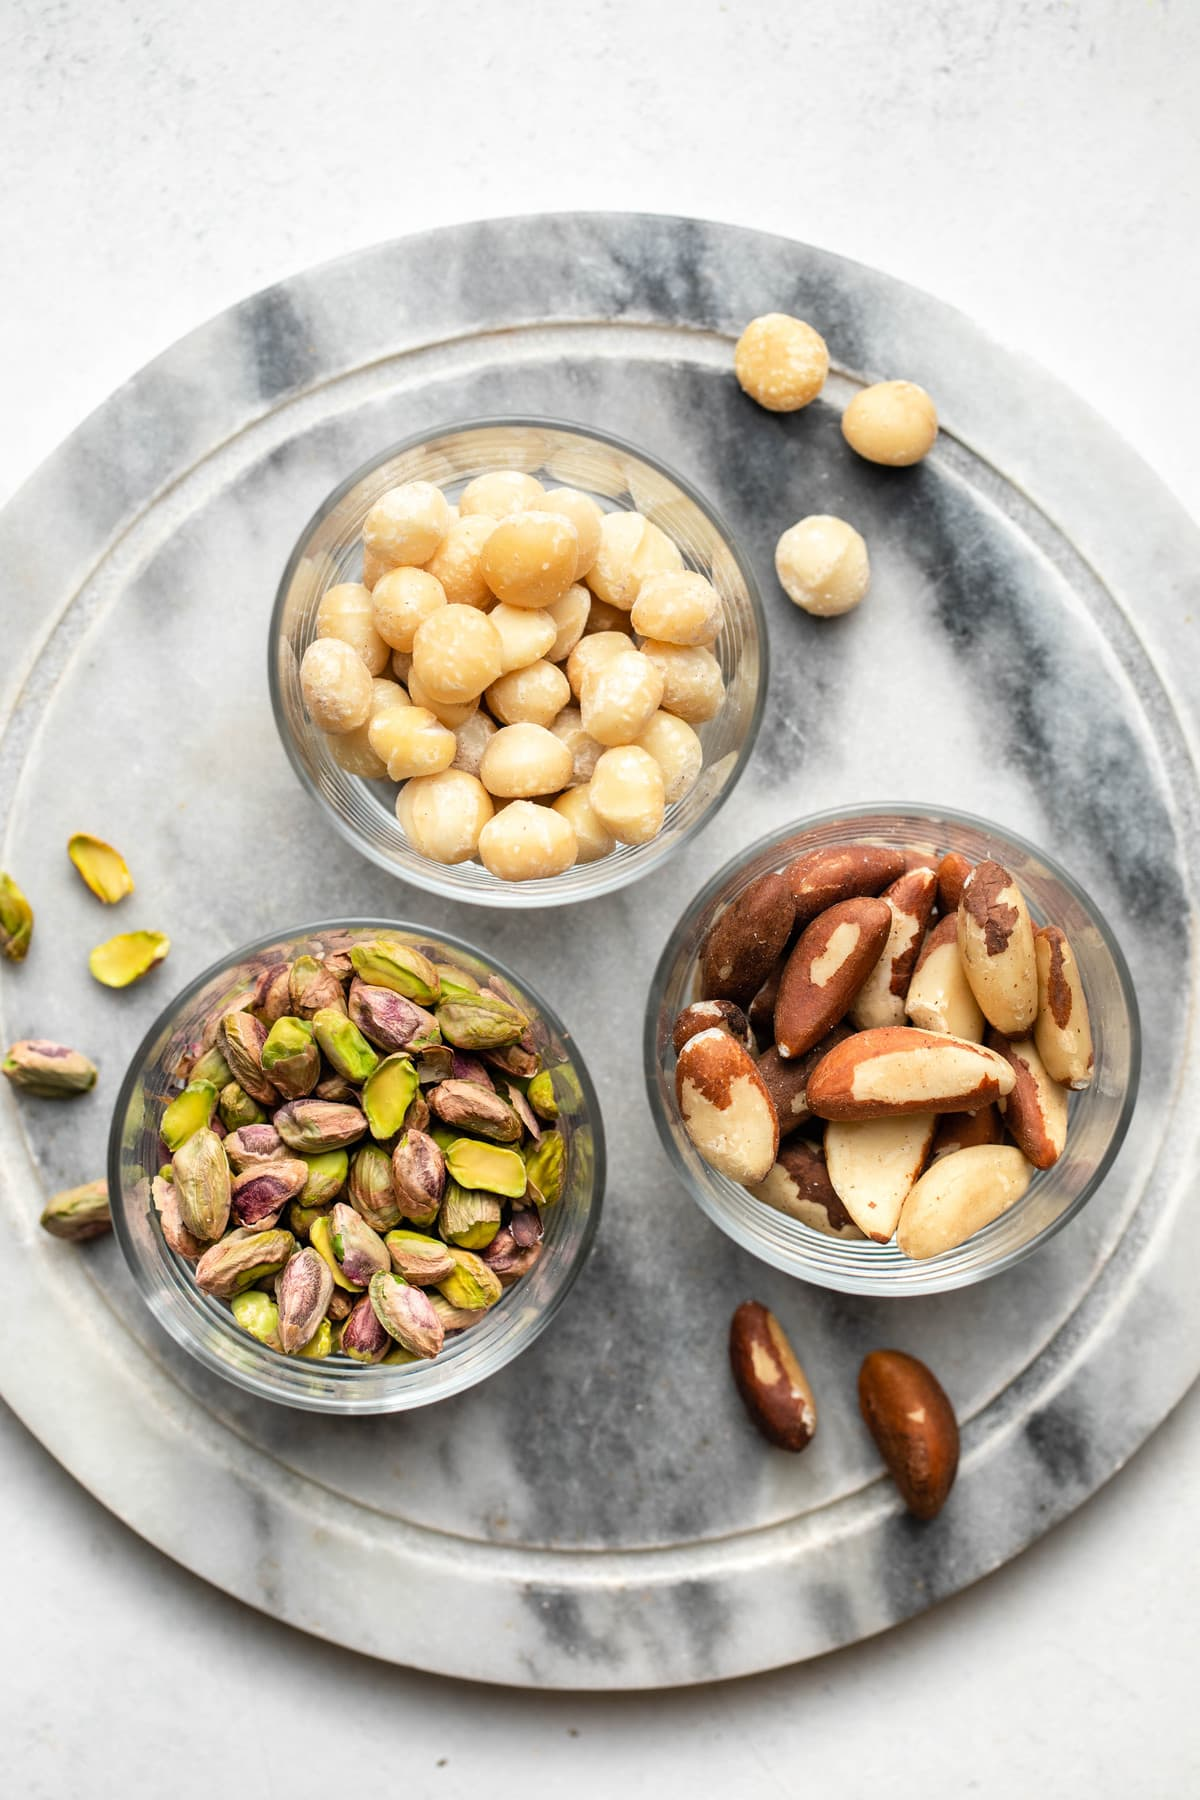 glass bowls of macadamia nuts, pistachios, and brazil nuts